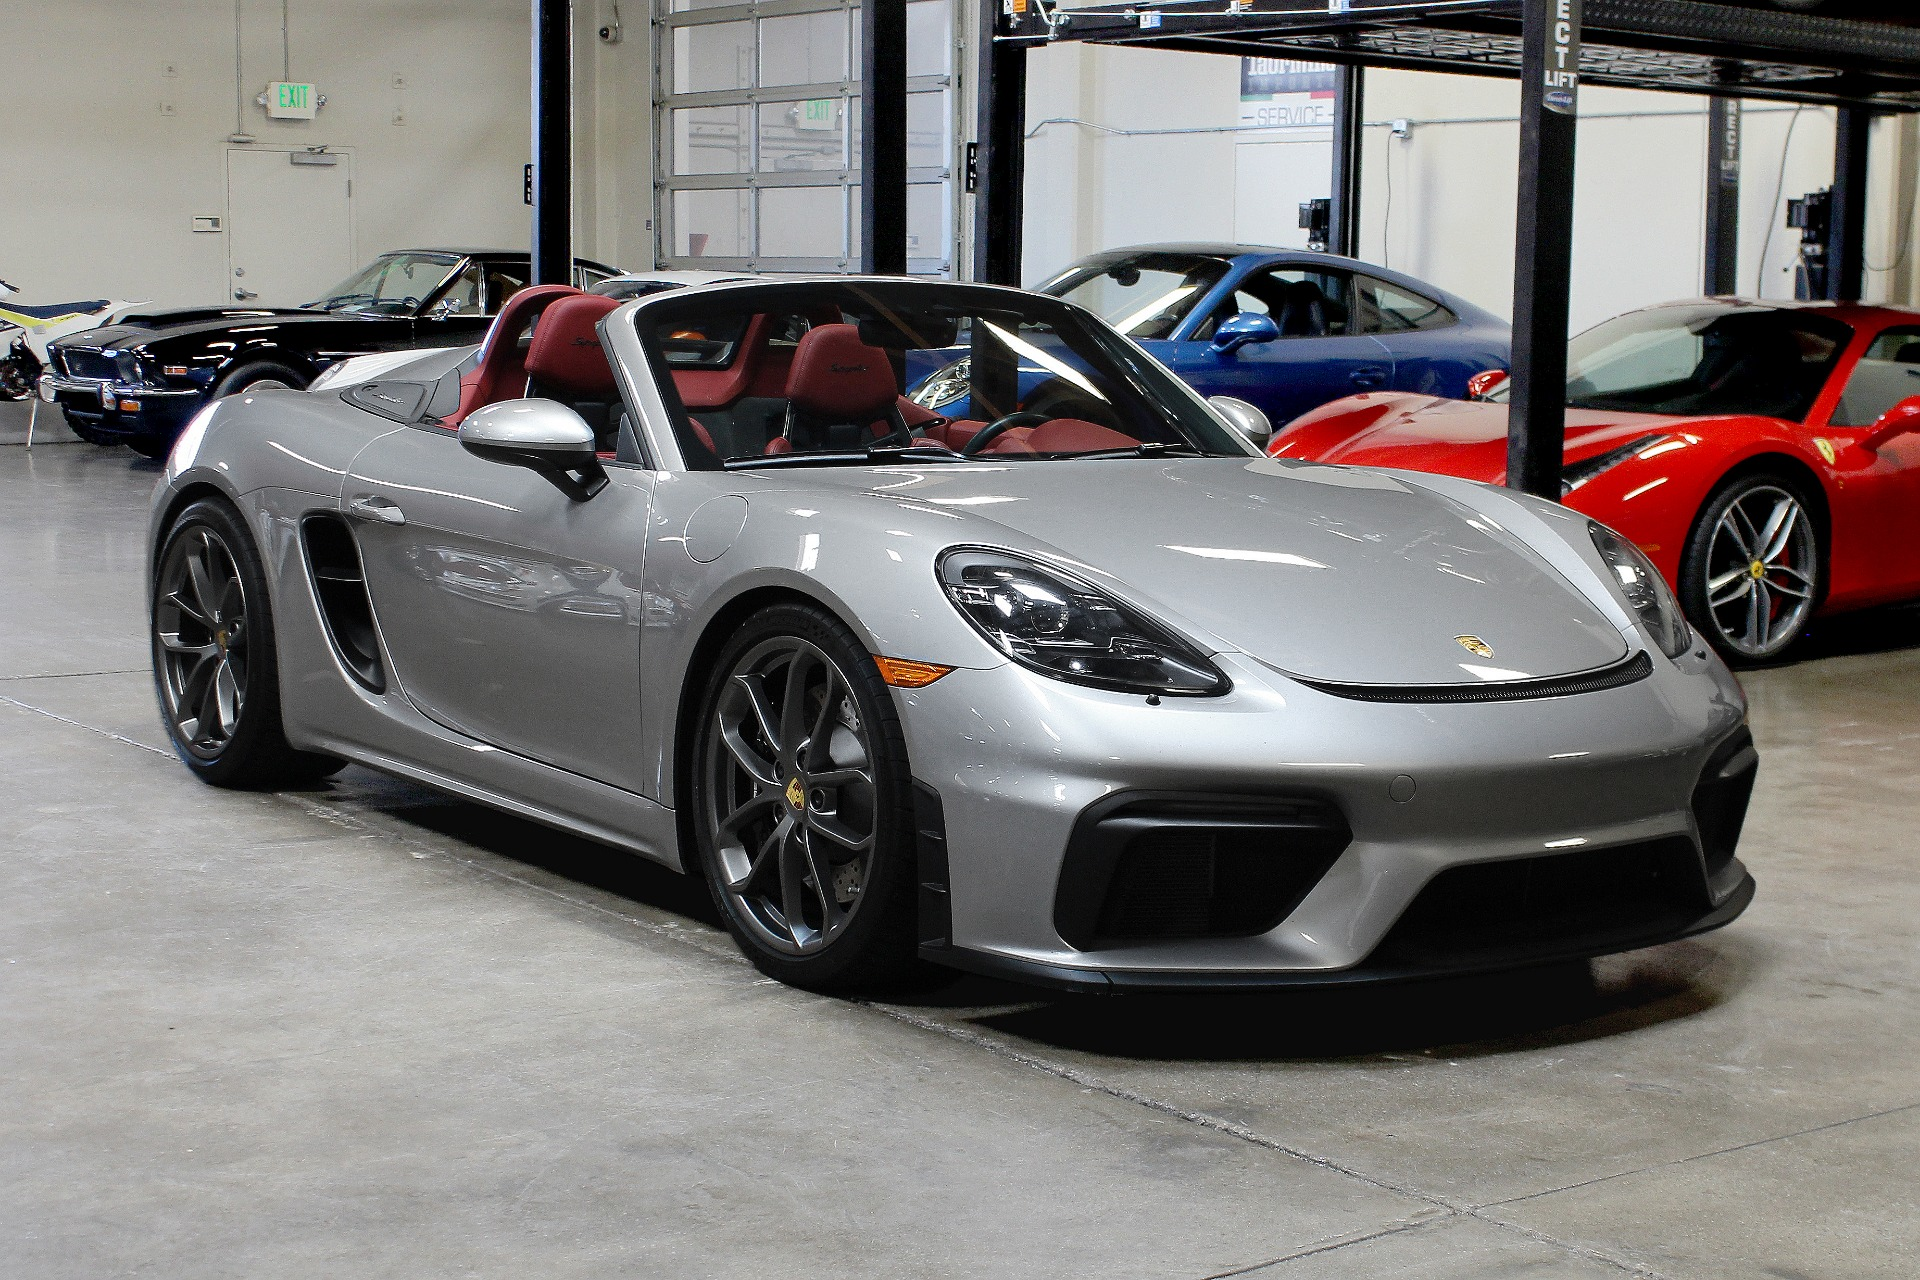 Used 2020 Porsche 718 Boxster Spyder for sale $129,995 at San Francisco Sports Cars in San Carlos CA 94070 1